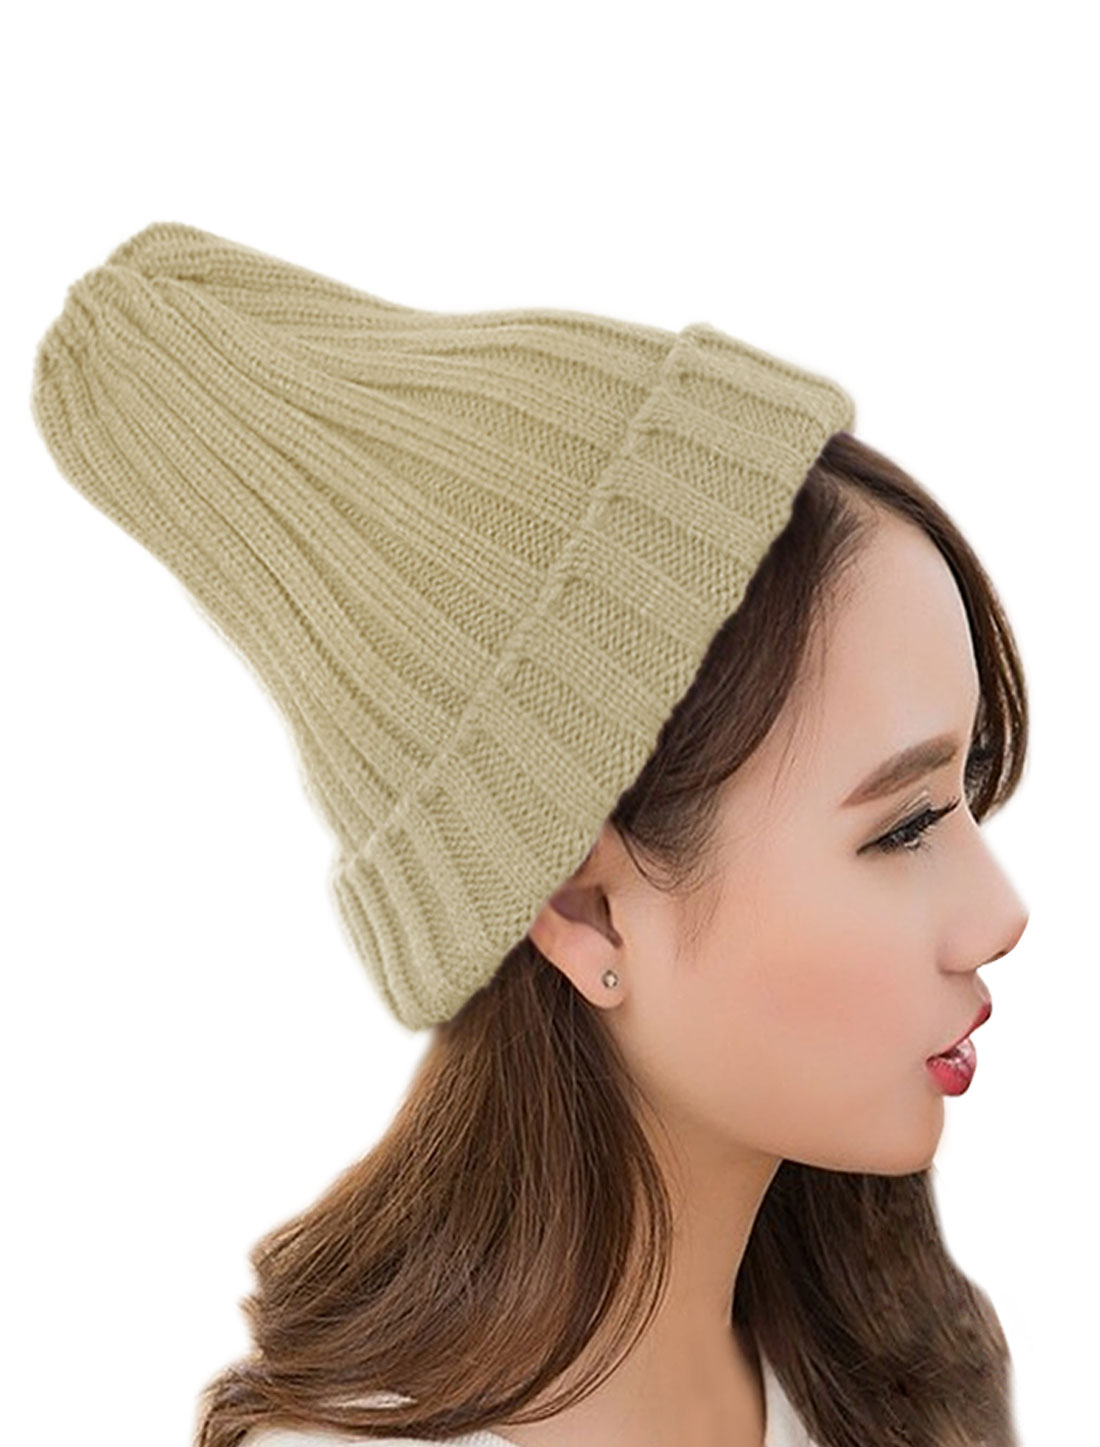 Unisex Knitted Cuffed Stretchy Ribbed Chunky Slouchy Casual Beanie Hat Beige